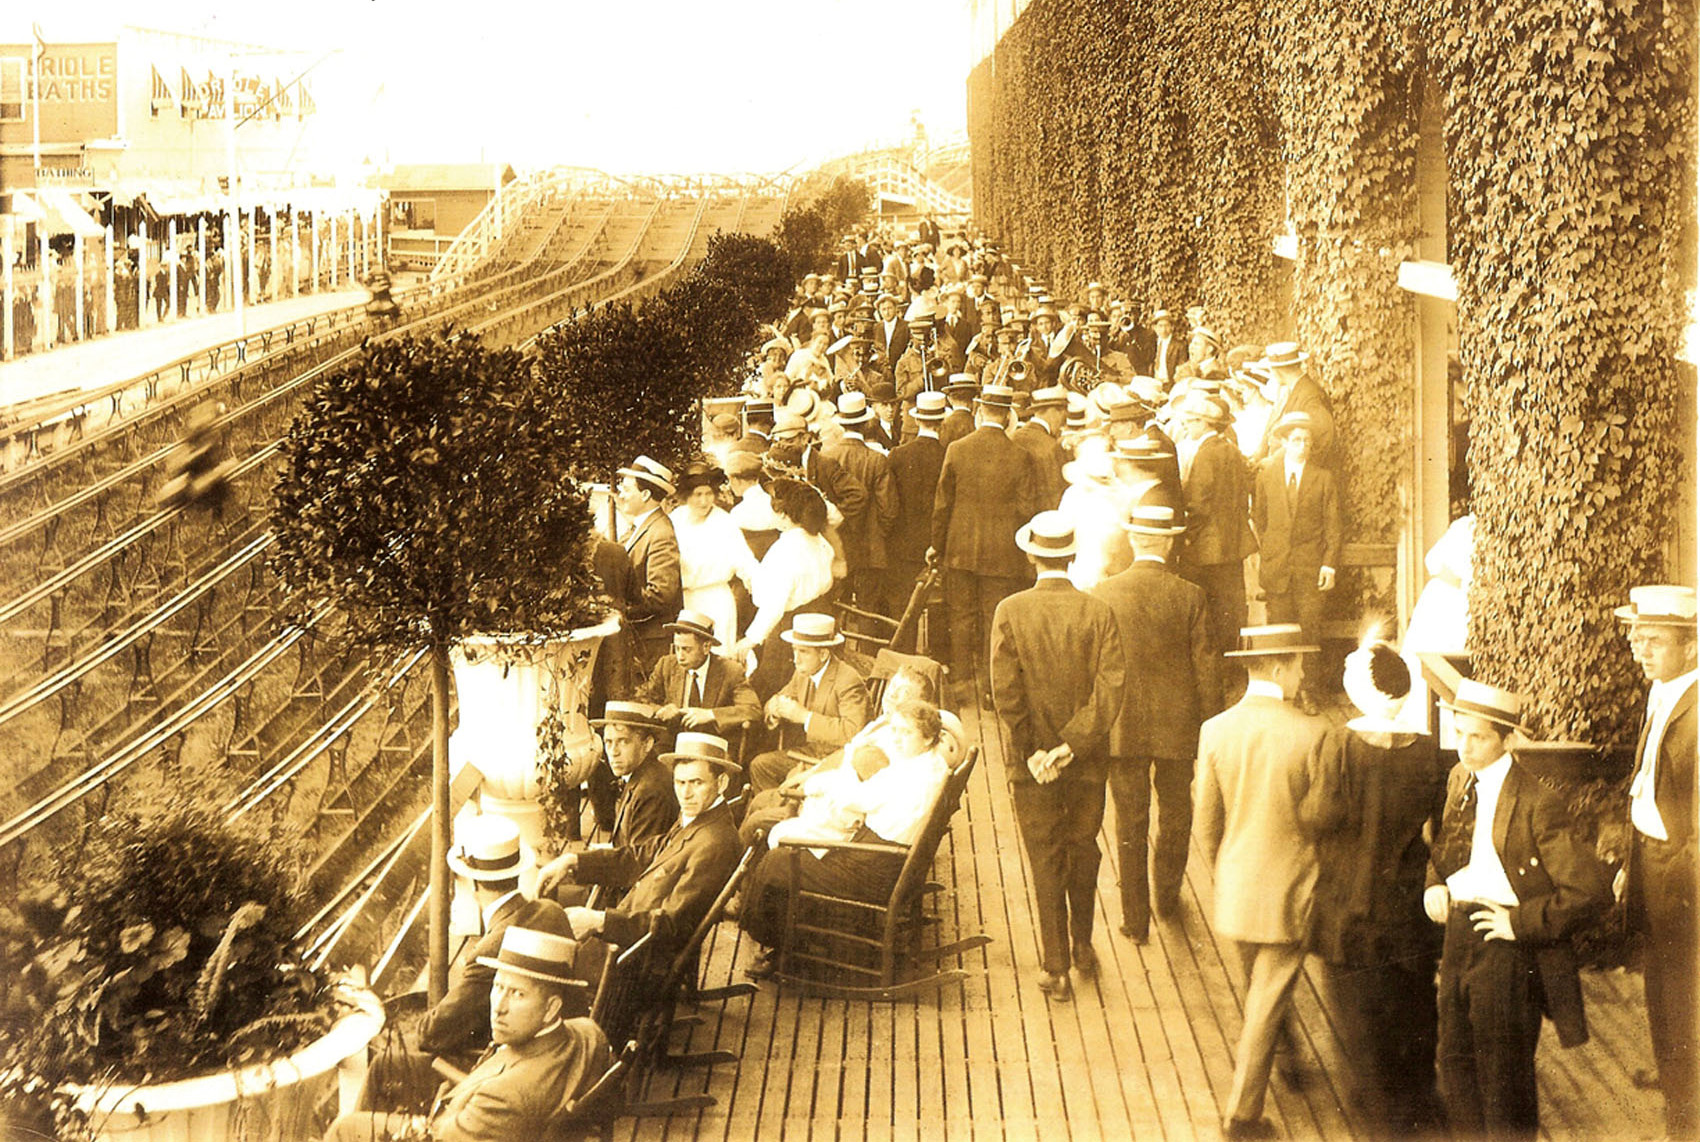 Coney-Island-Steeplechase-finish-line-Veranda-ca-1912